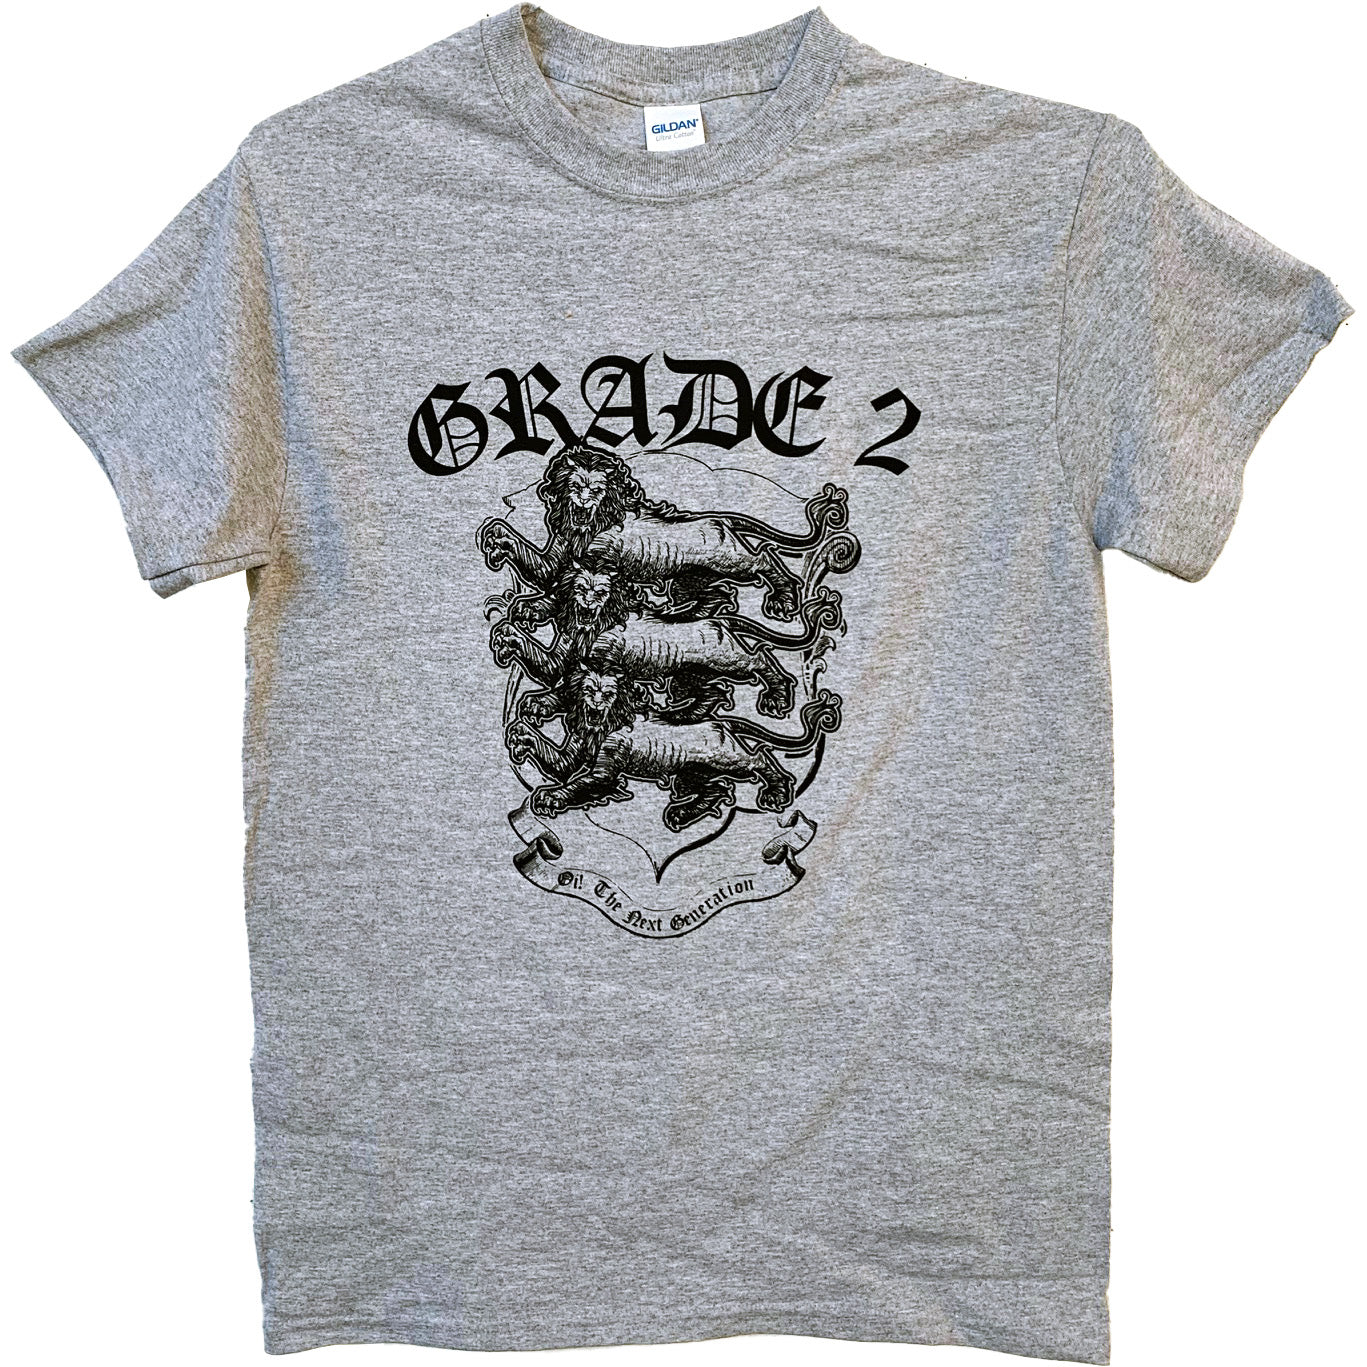 Grade 2 - Three Lions - Grey - T-Shirt